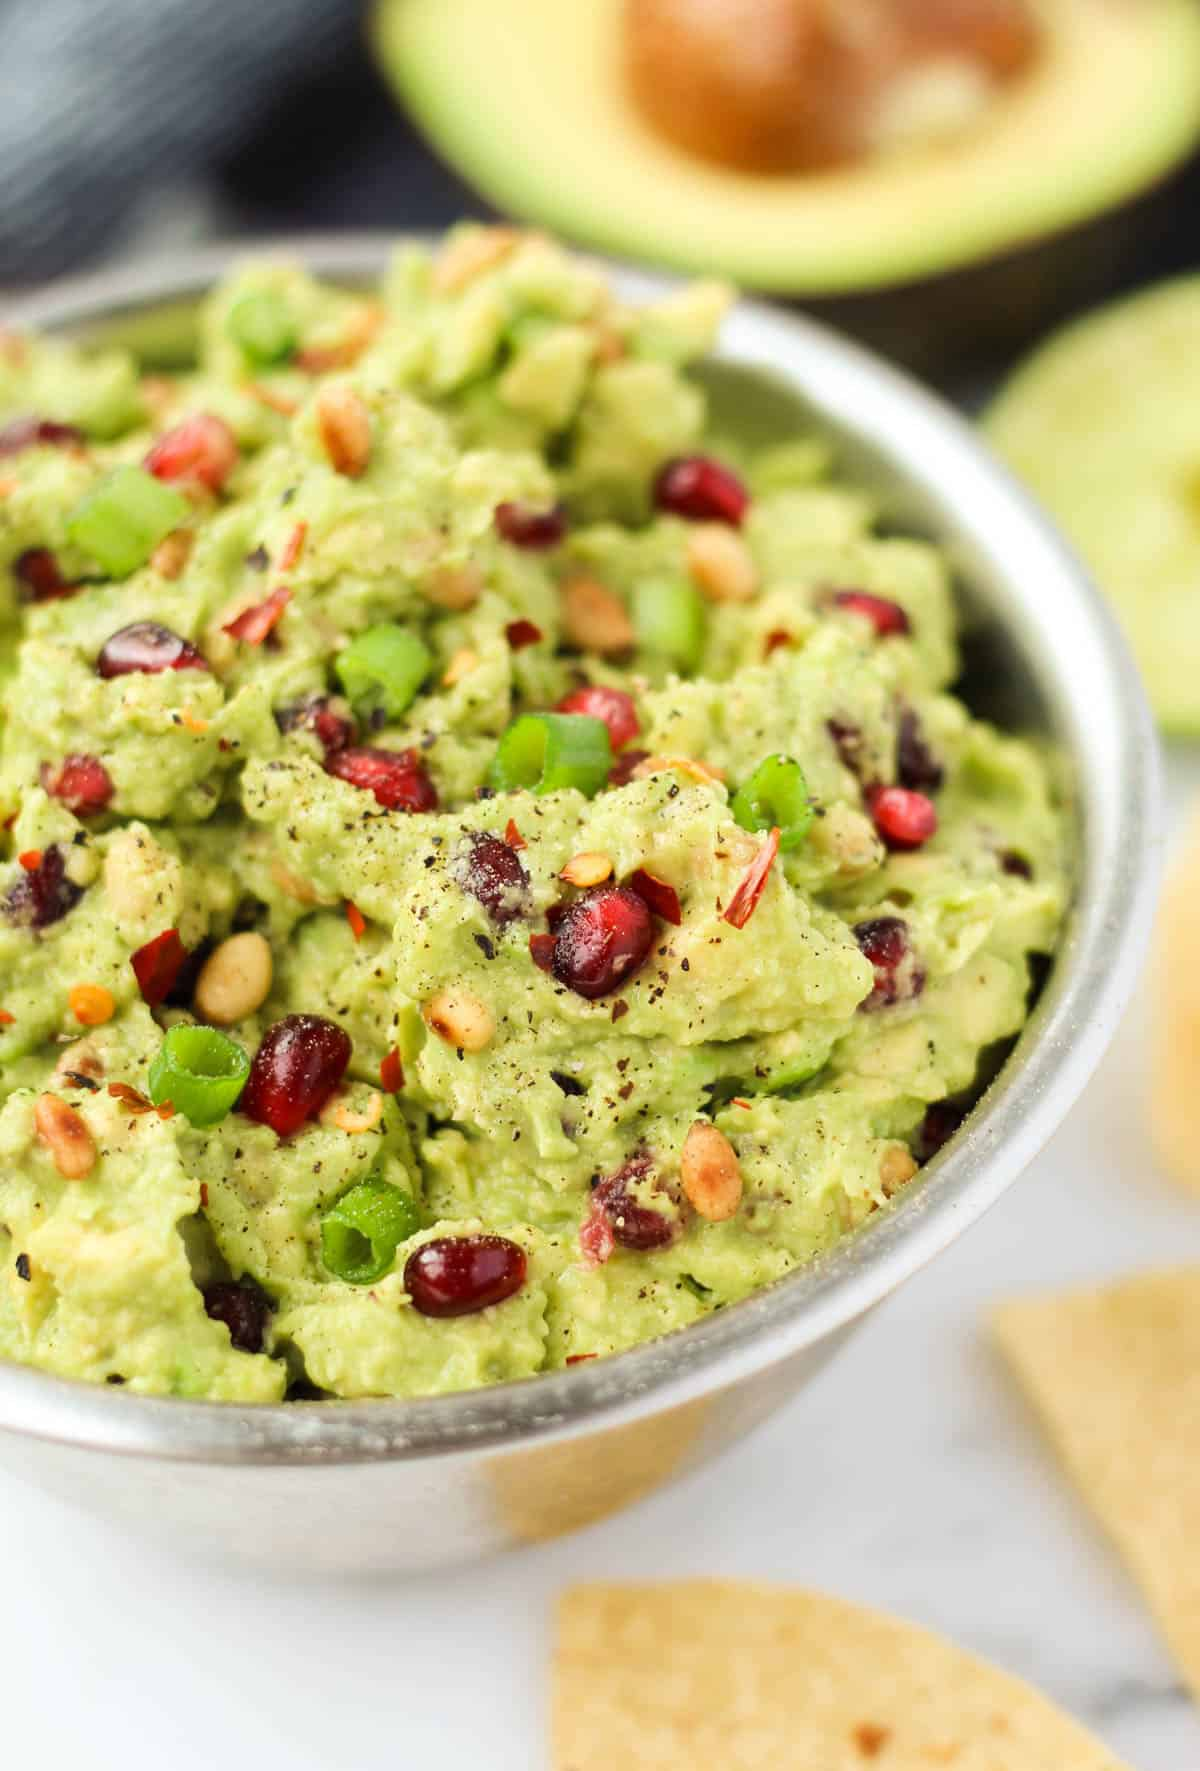 An easy and festive appetizer, this Pomegranate Guacamole comes together in 5 minutes and is vegan, paleo, dairy and gluten free, and Whole30 compliant - Eat the Gains